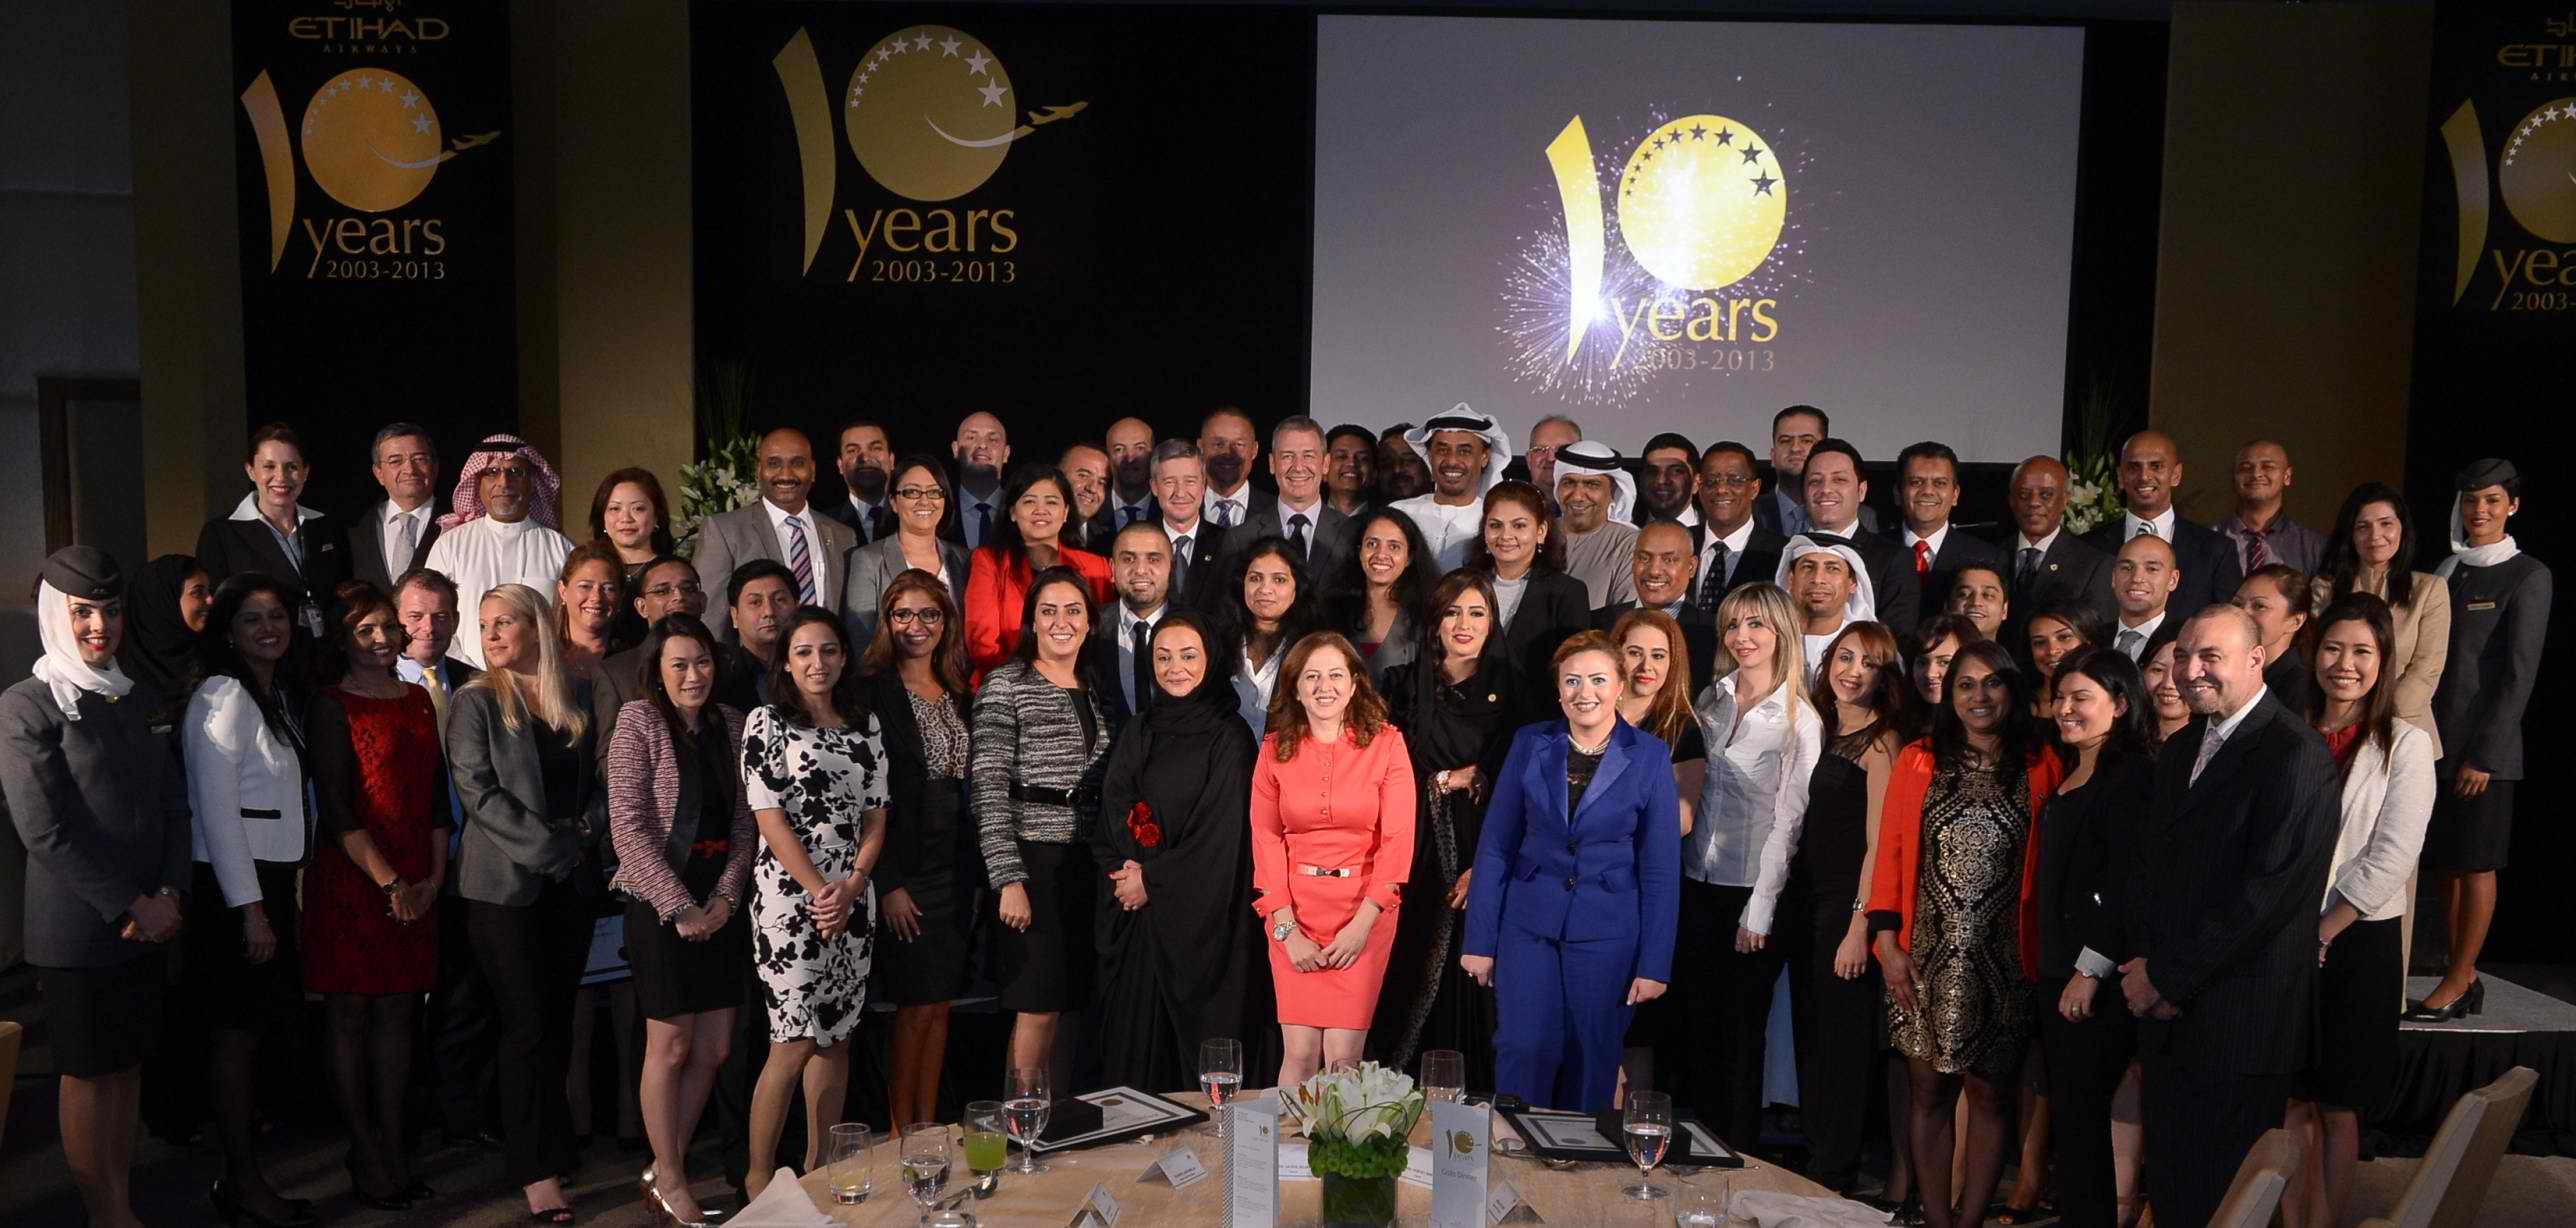 Etihad Airways longest serving staff members celebrate their ten-year achievements with airline management executives.